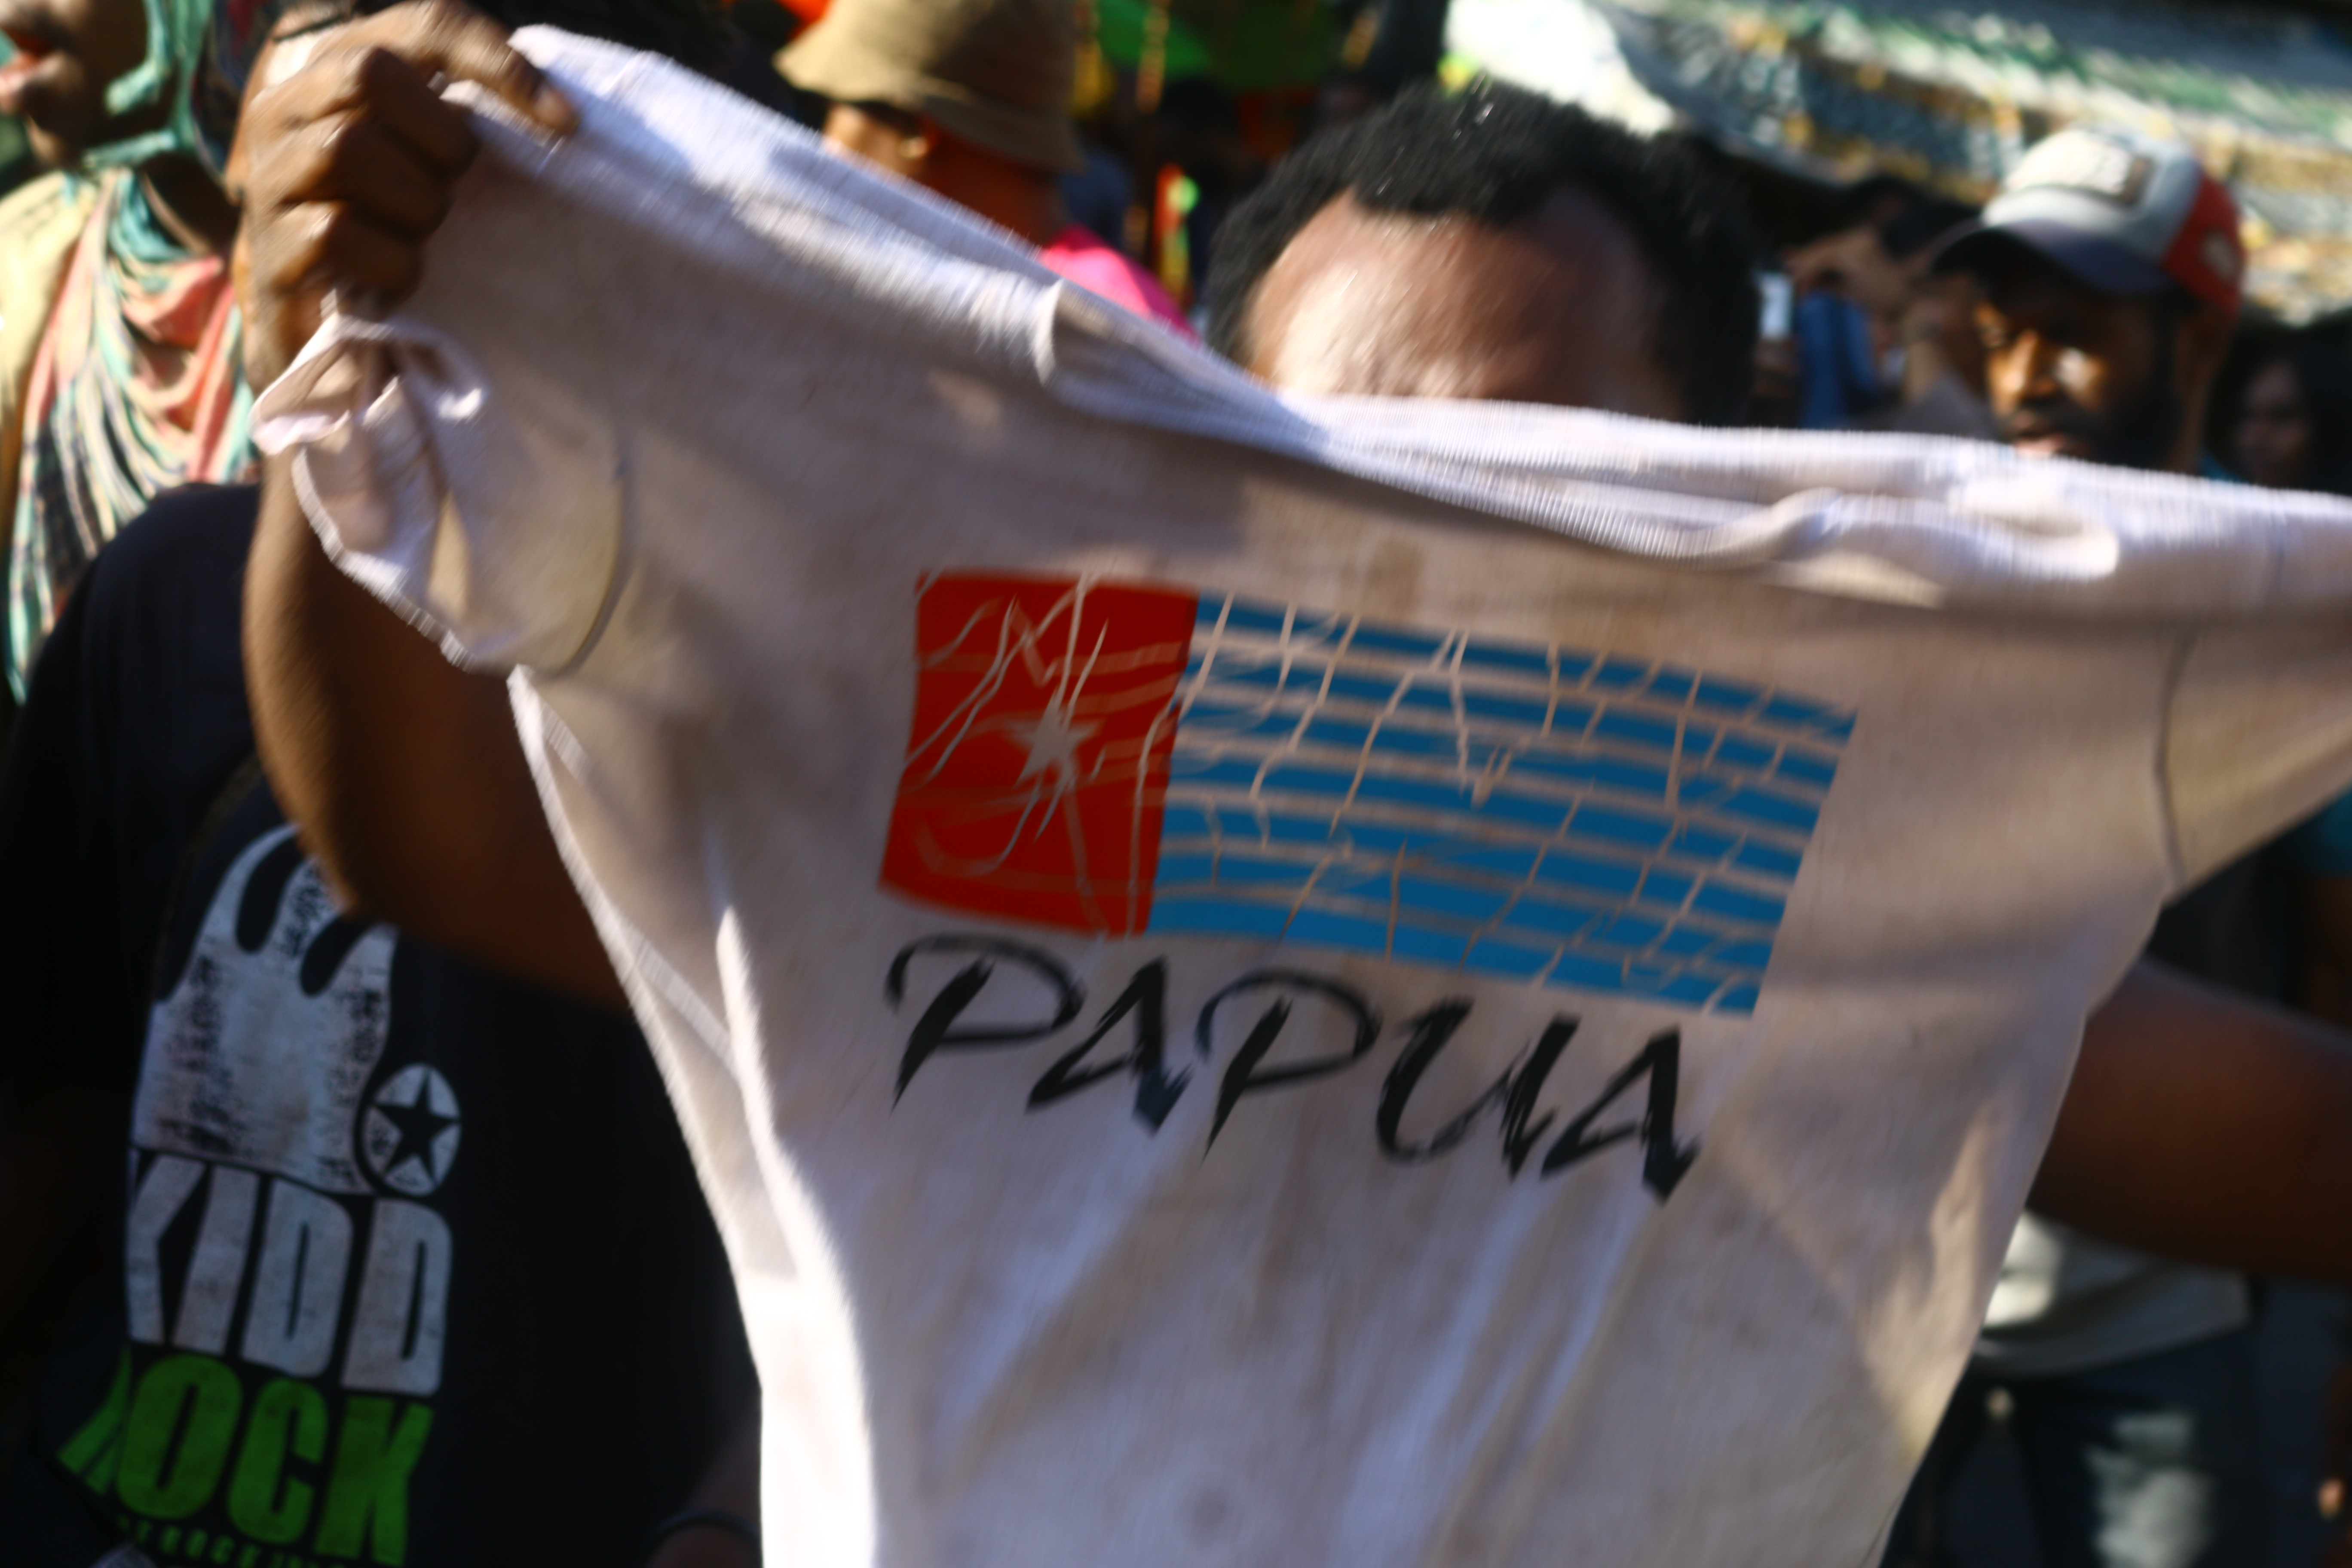 A participant ran while spreading a T-shirt with the Morning Star flag on it.